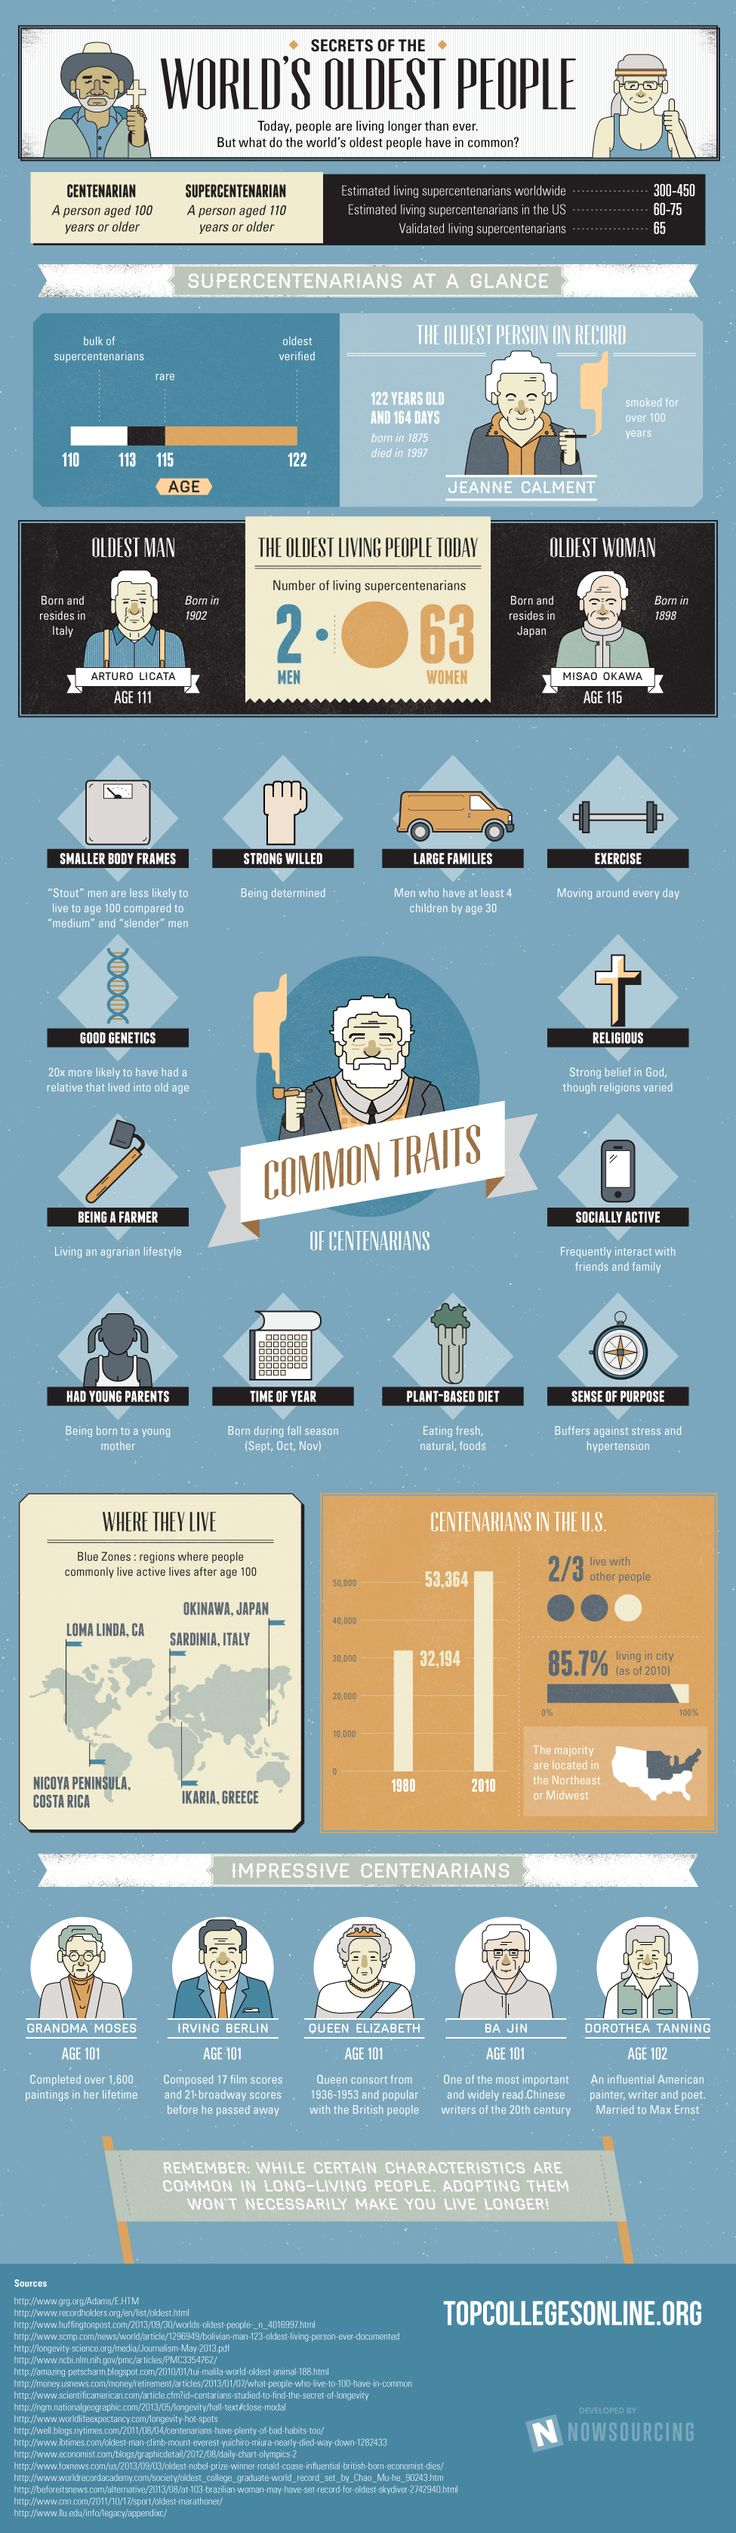 Secret's Of The World's Oldest People [Infographic]